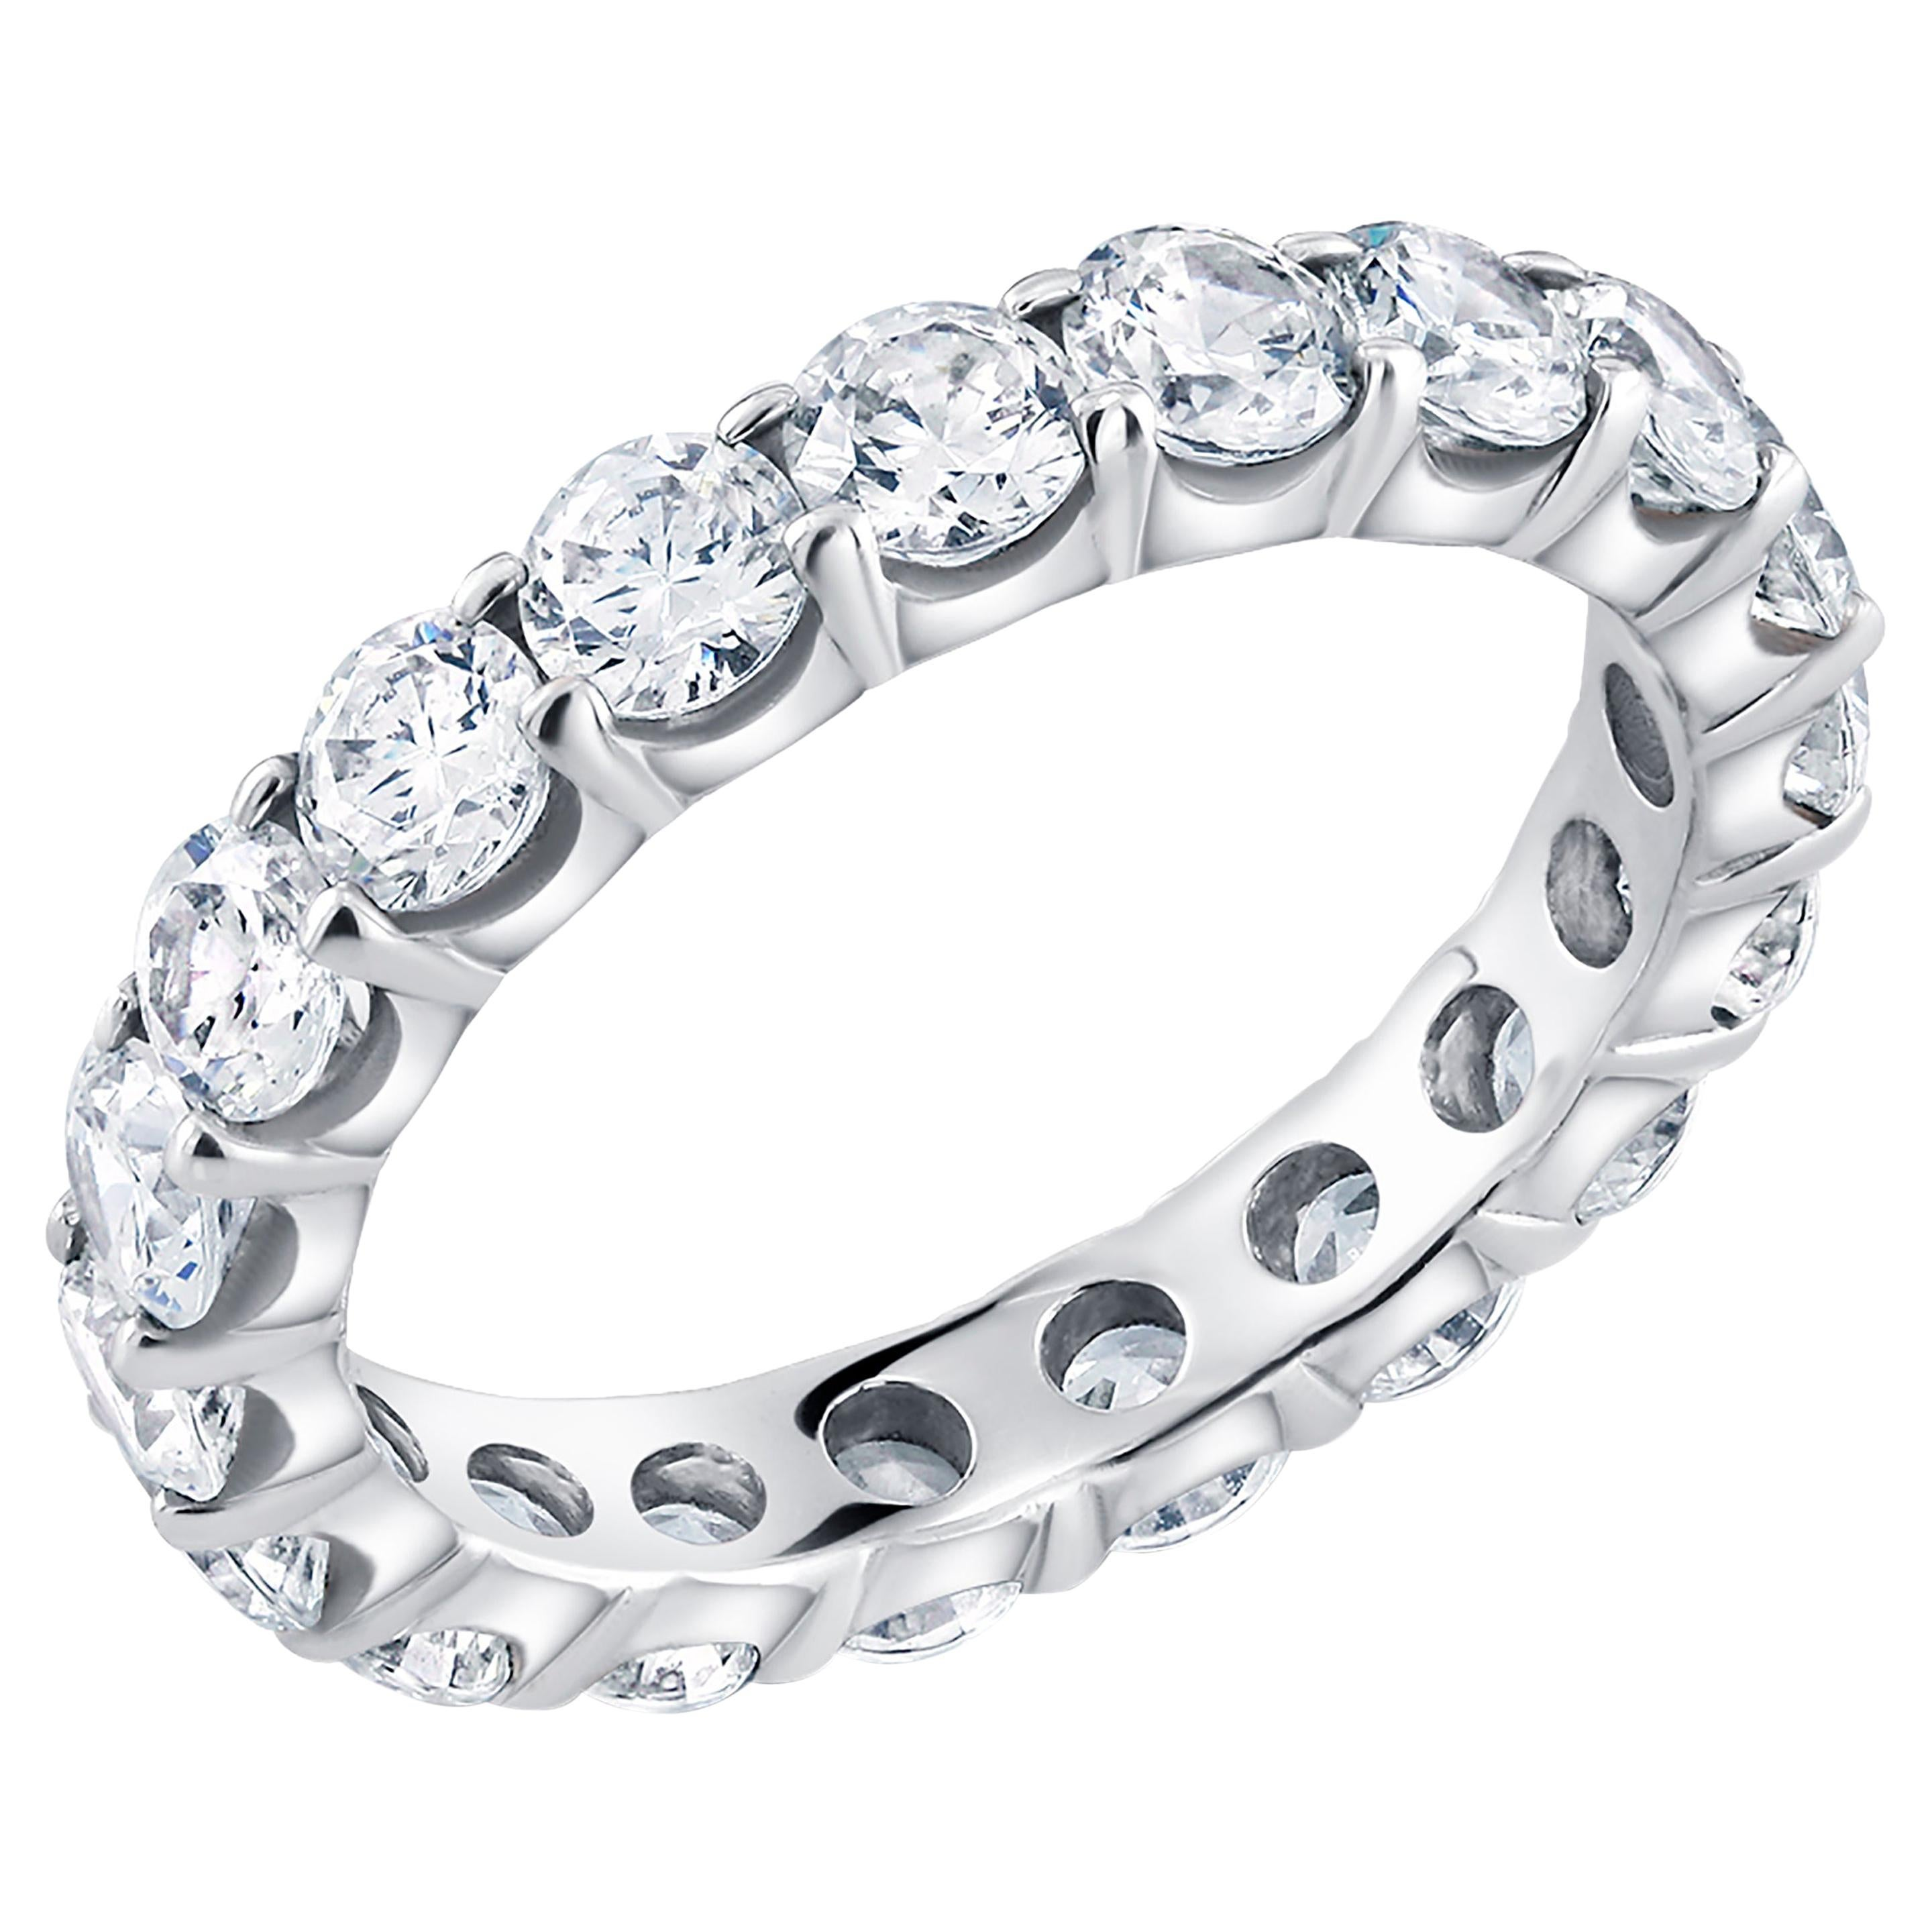 Platinum Diamond Prong Set Eternity Ring Weighing 3.00 Carat